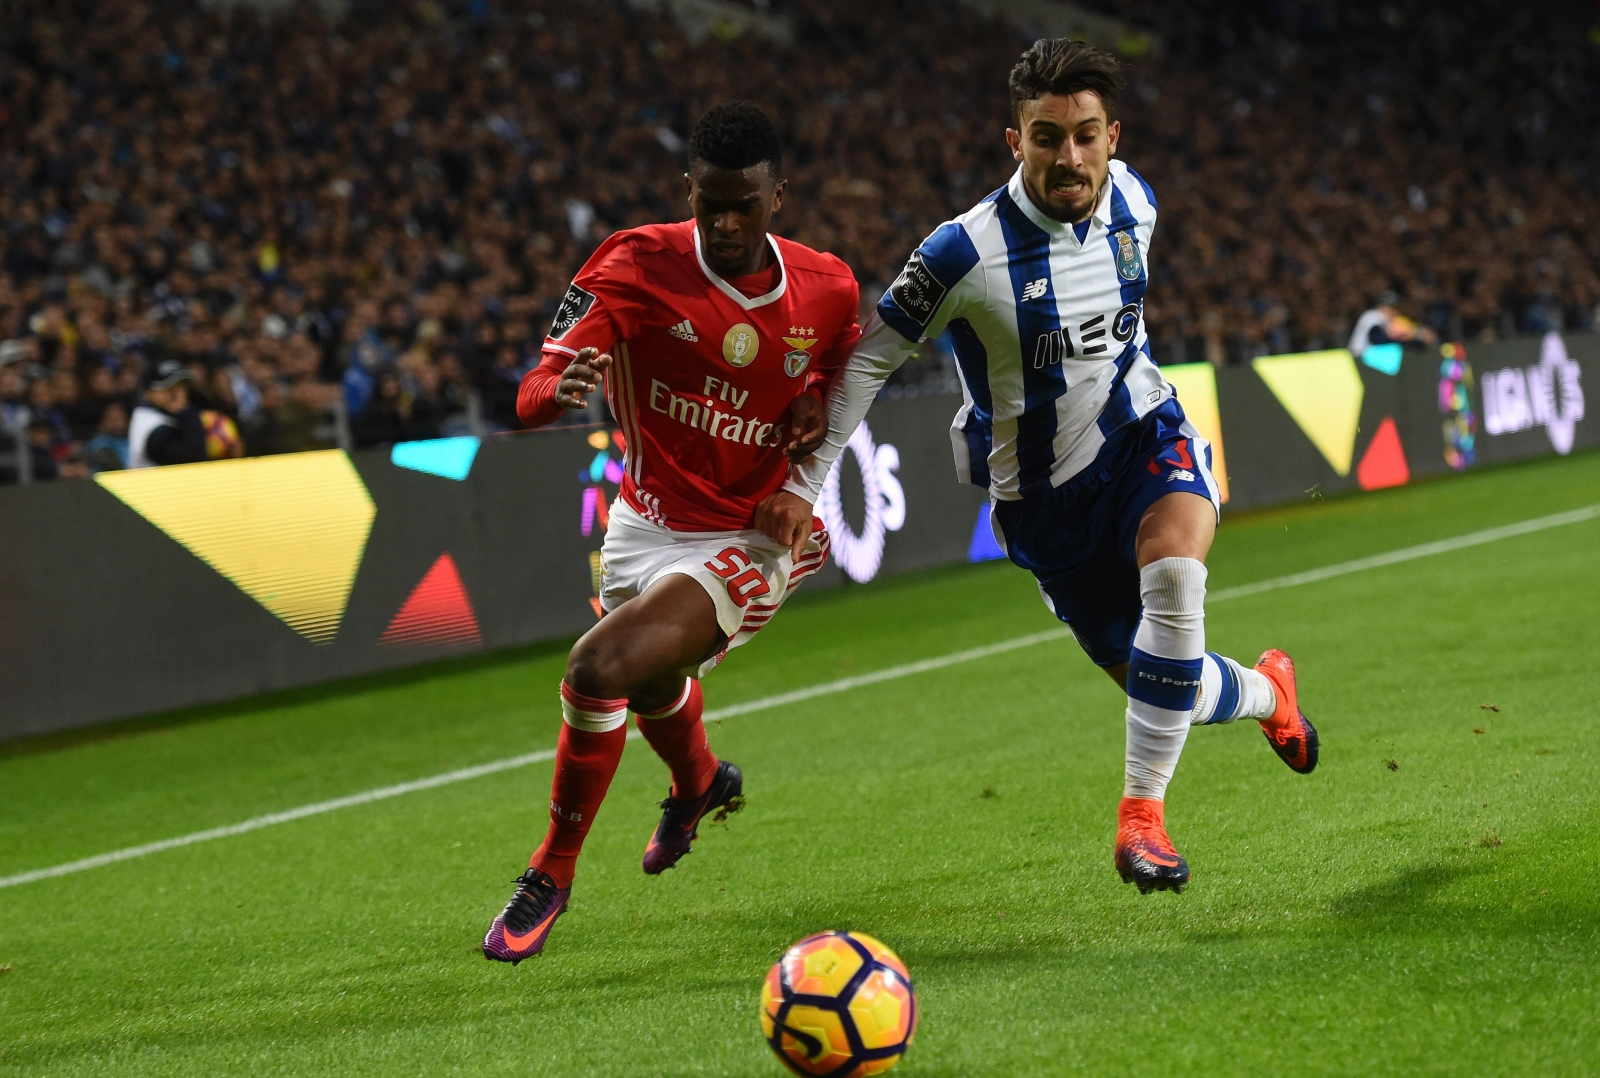 Alex Telles' agent reckons Porto star will play for Chelsea one day